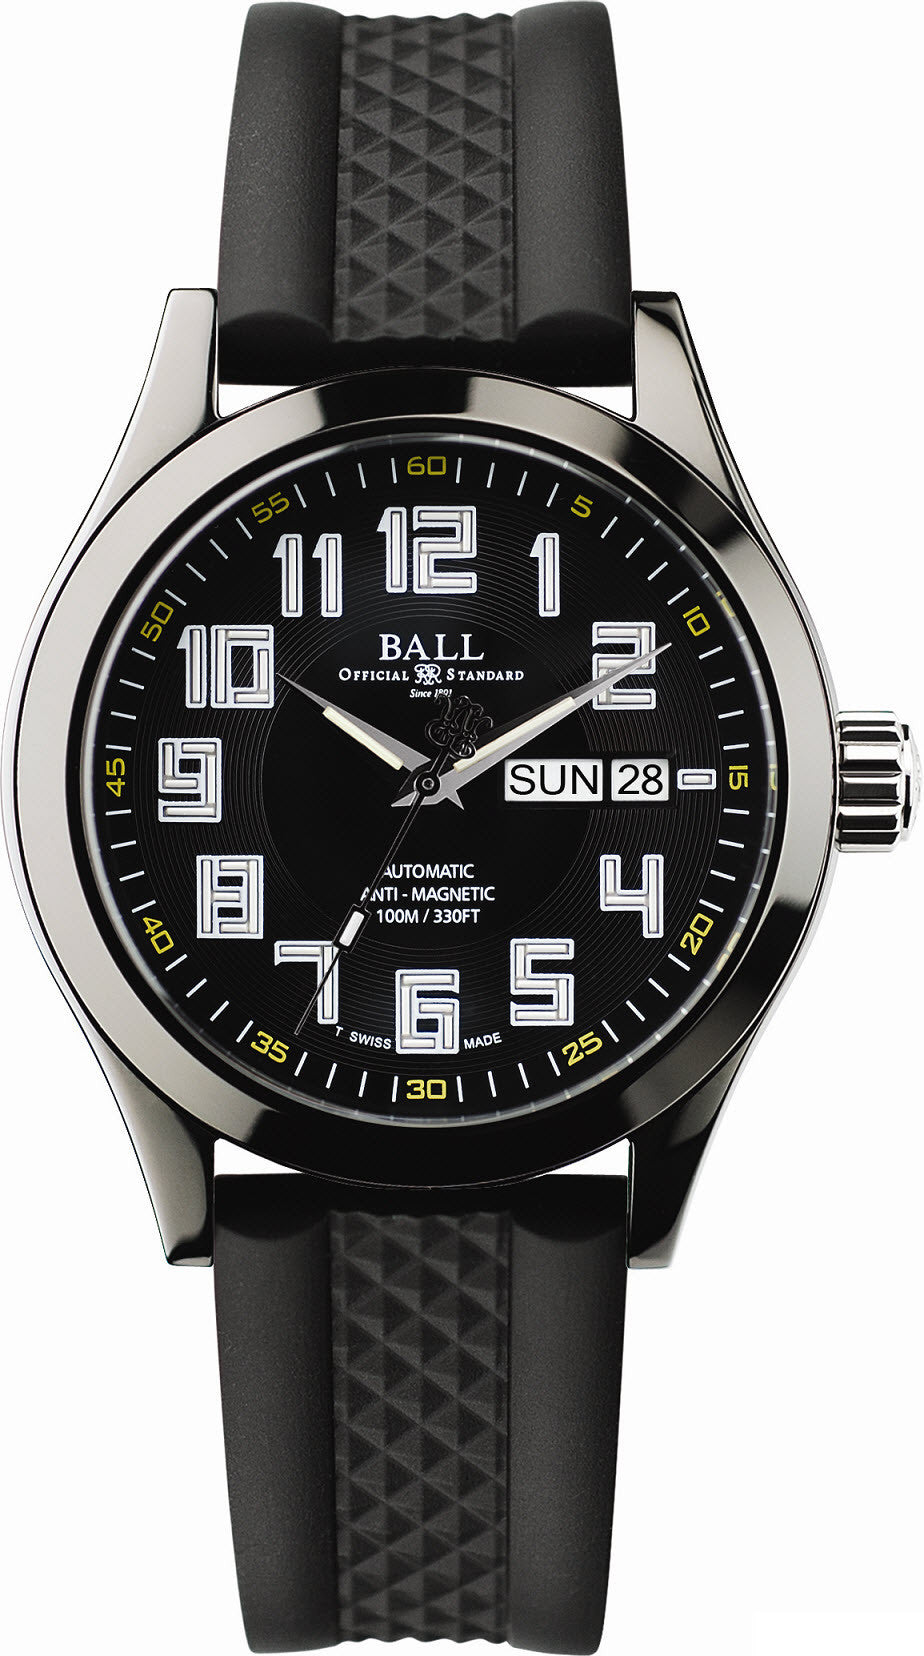 Ball Watch Company Engineer Master II DLC Yellow